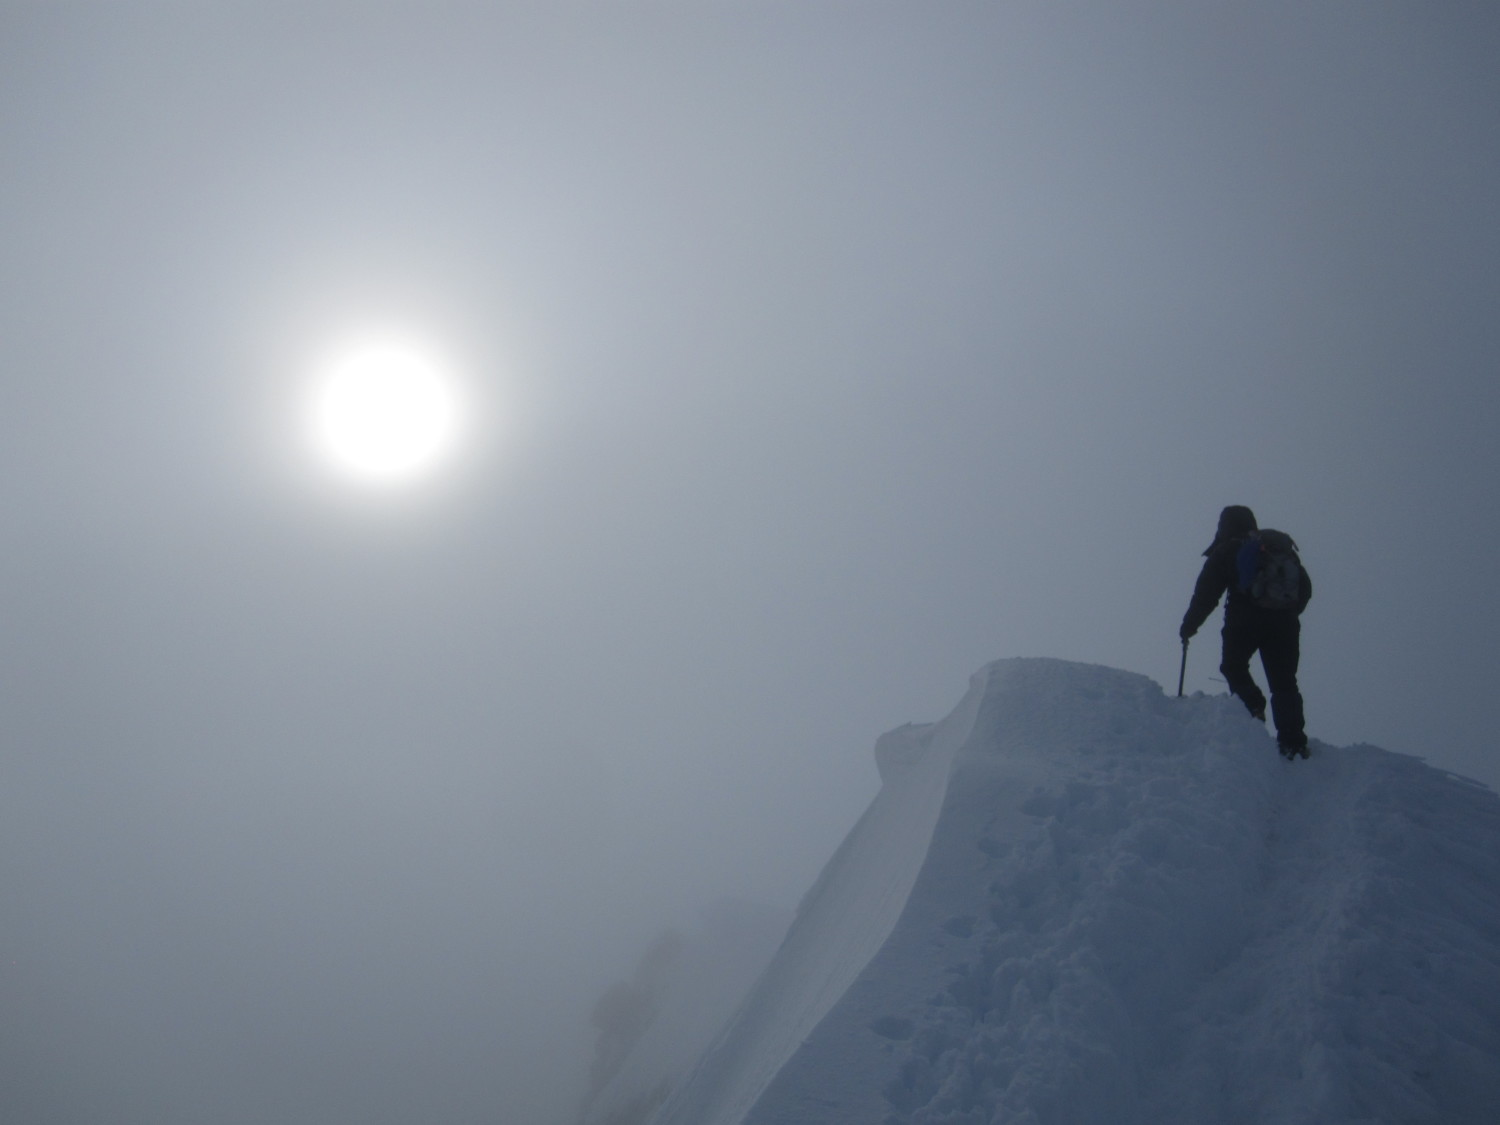 Unknown climber views the summit on Mount Hood, June 1, 2013, by Thomas Poremba.  Thank you, Thomas!